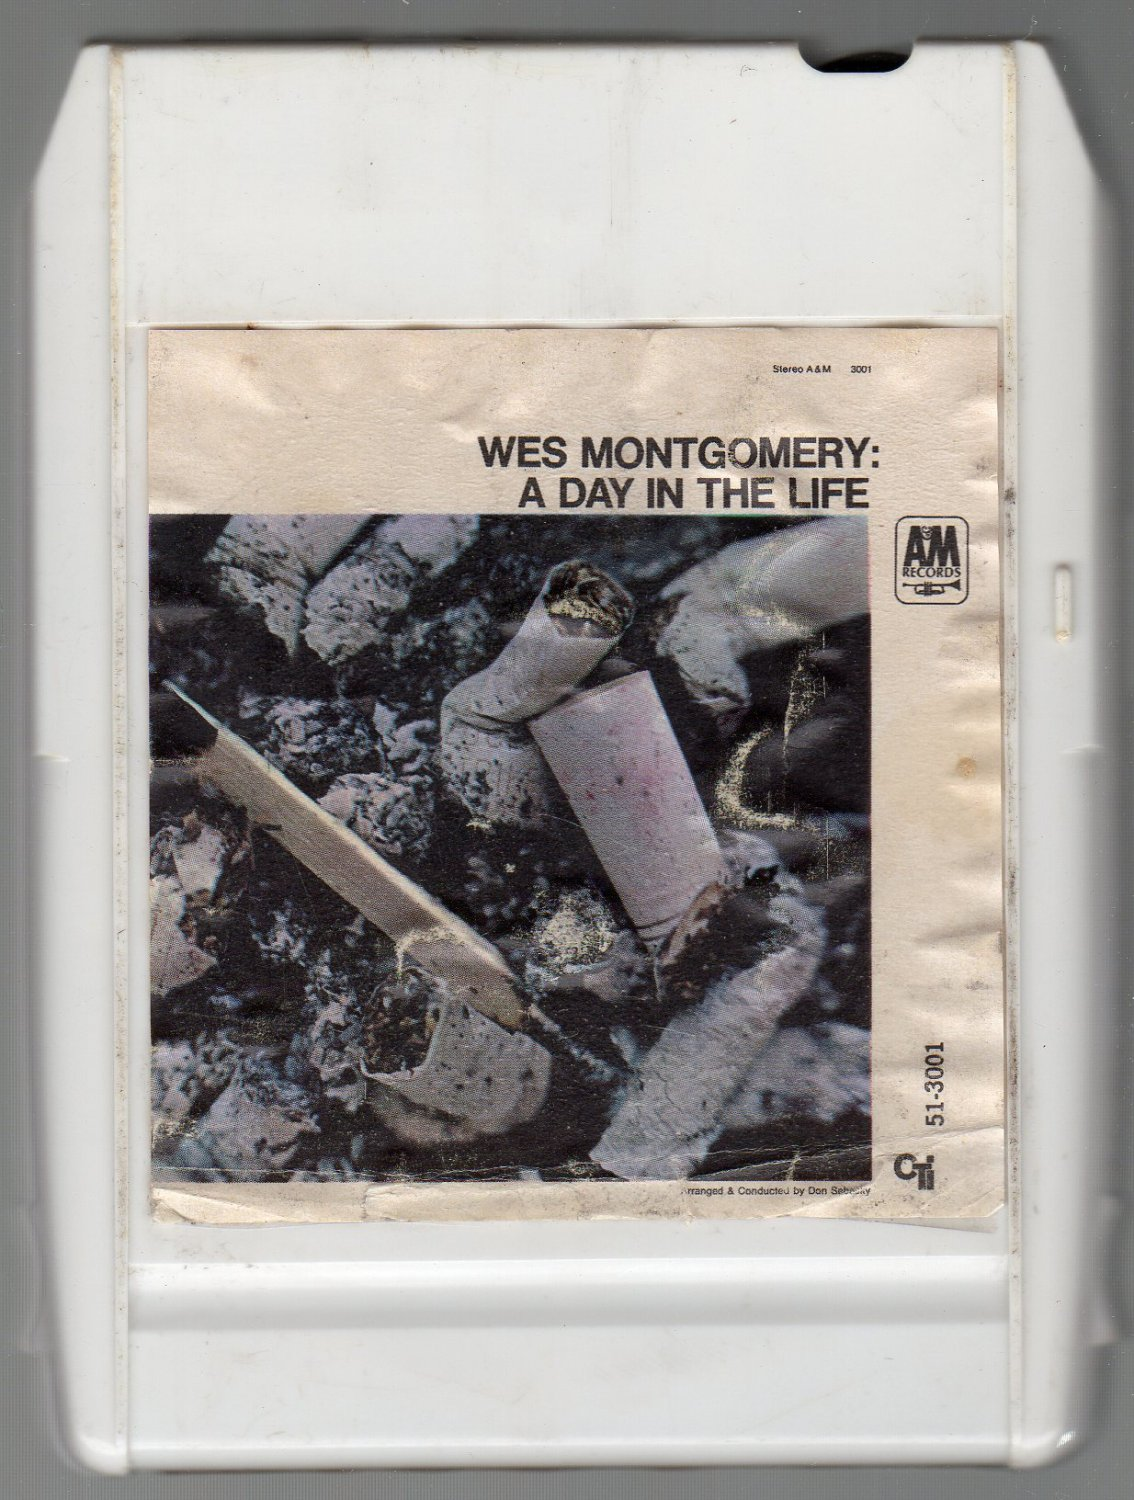 Wes Montgomery - A Day In The Life 1967 8-track tape